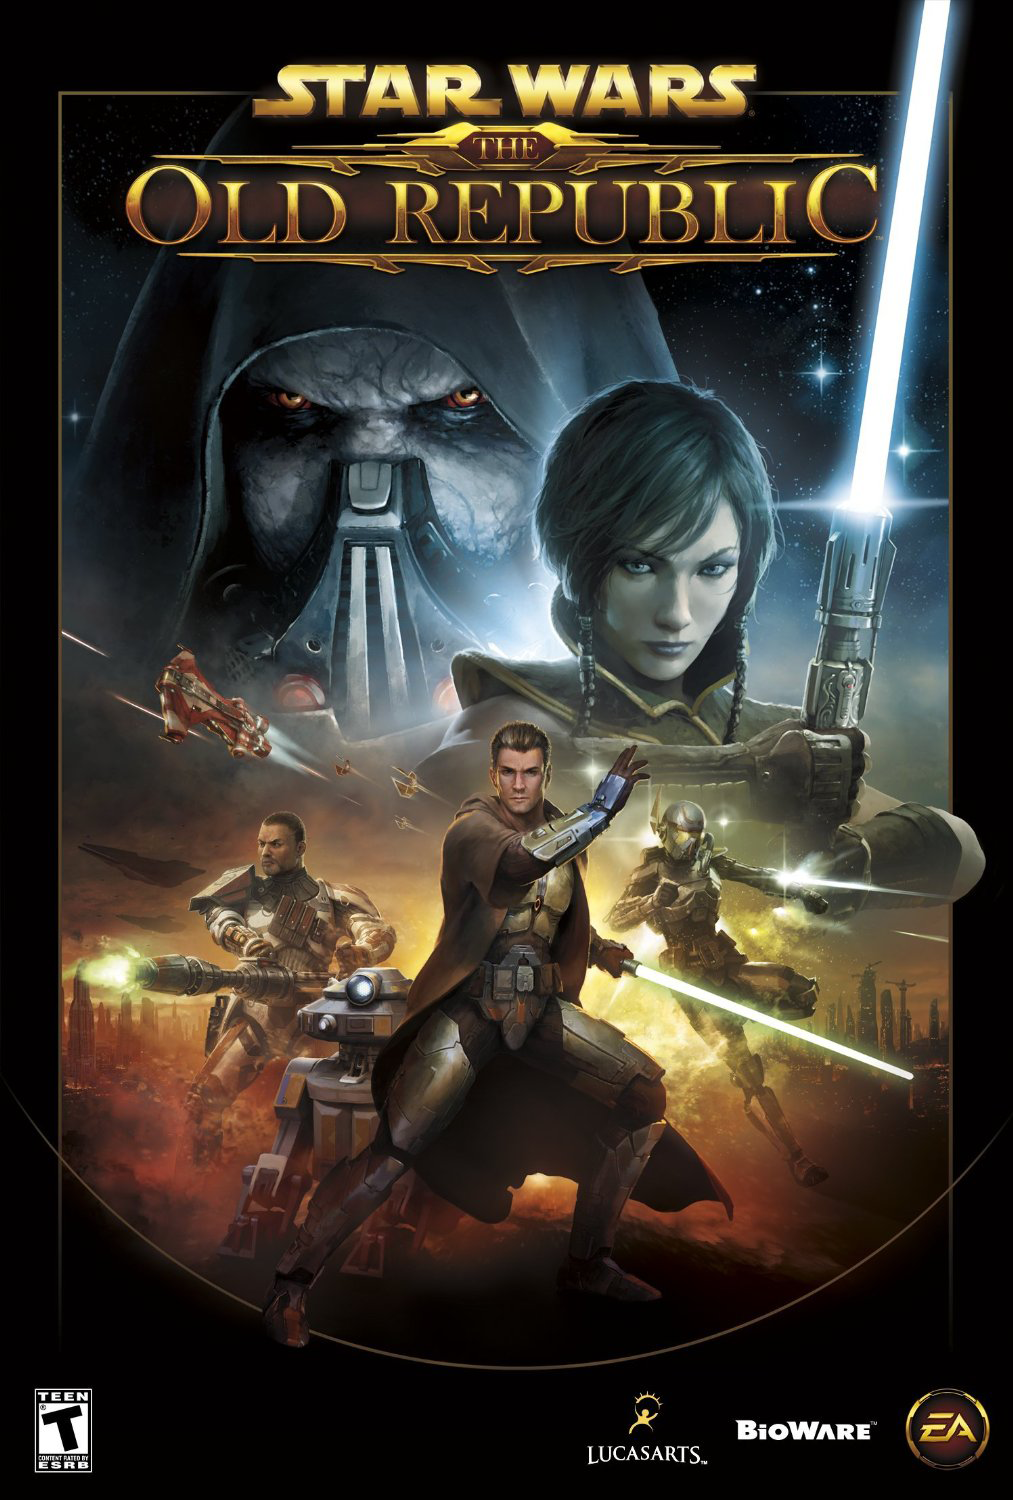 Brian Tarsis Comics http://starwars.wikia.com/wiki/Star_Wars:_The_Old_Republic